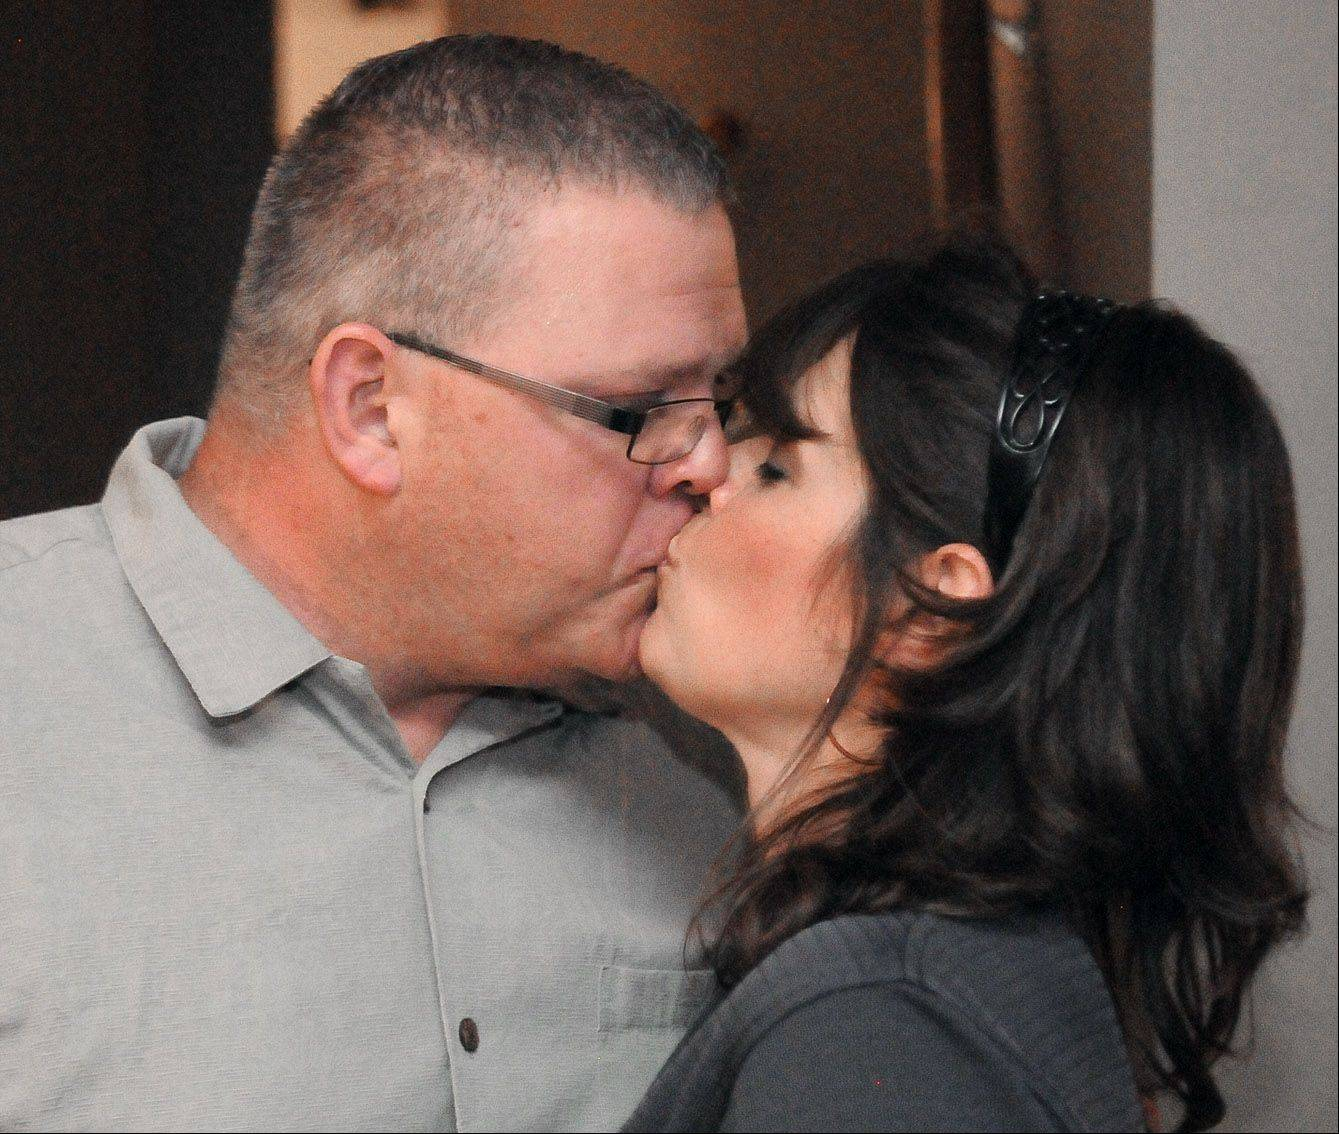 Kane County Coroner republican candidate Rob Russell gives his wife, Susan, a kiss during his election night party at their South Elgin home. Russell had just announced to his family, friends, children and other supporters he was in the lead and was thankful to all of them for helping him during the election.